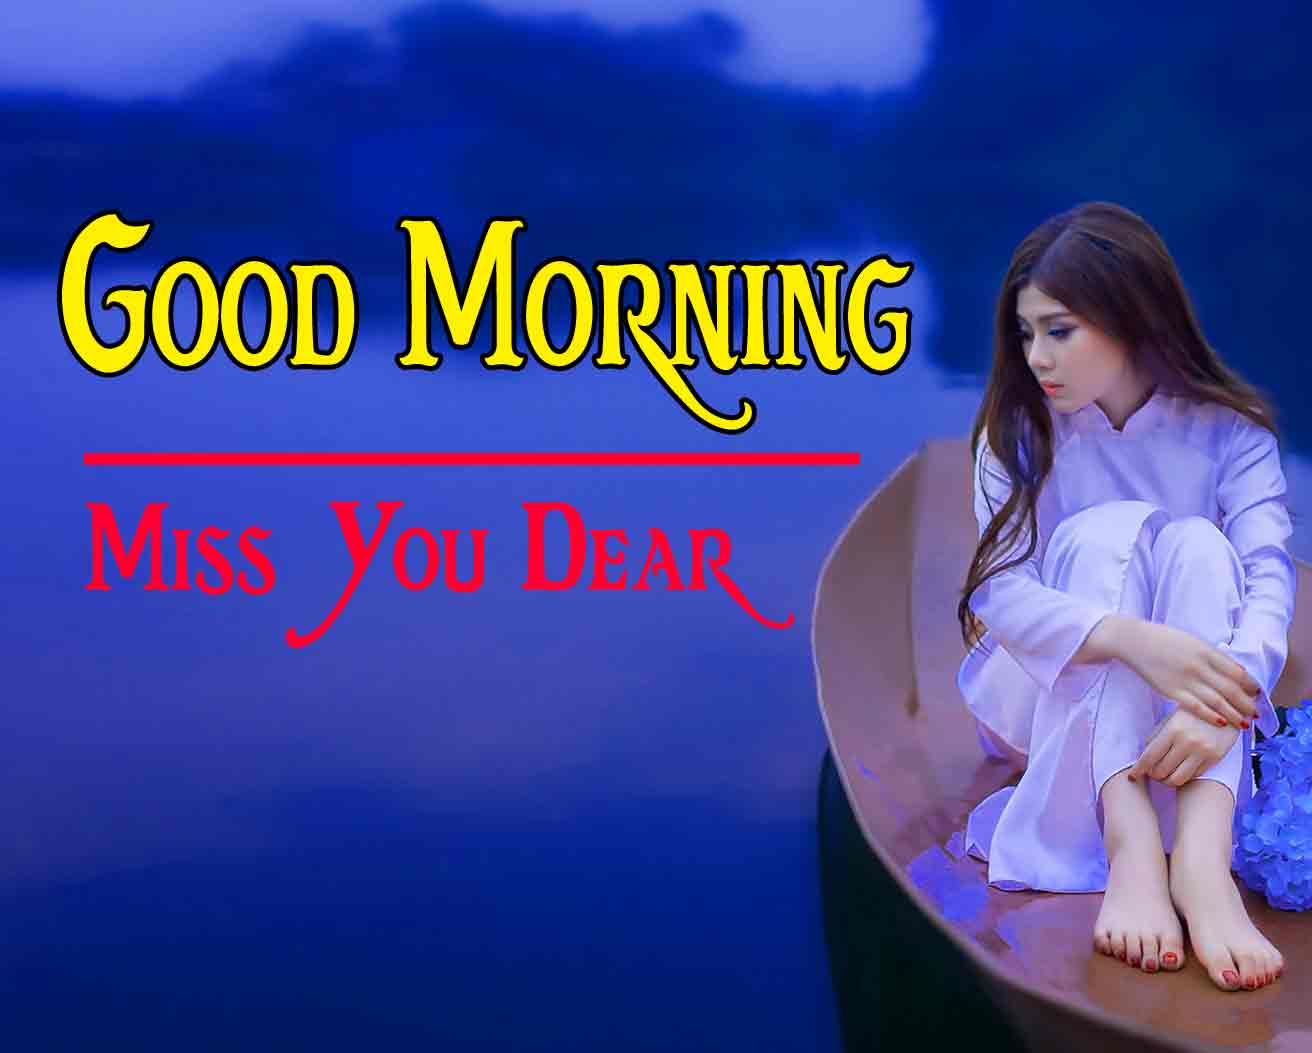 Good Morning 4k HD Images HD Pics Wallpaper for Facebook